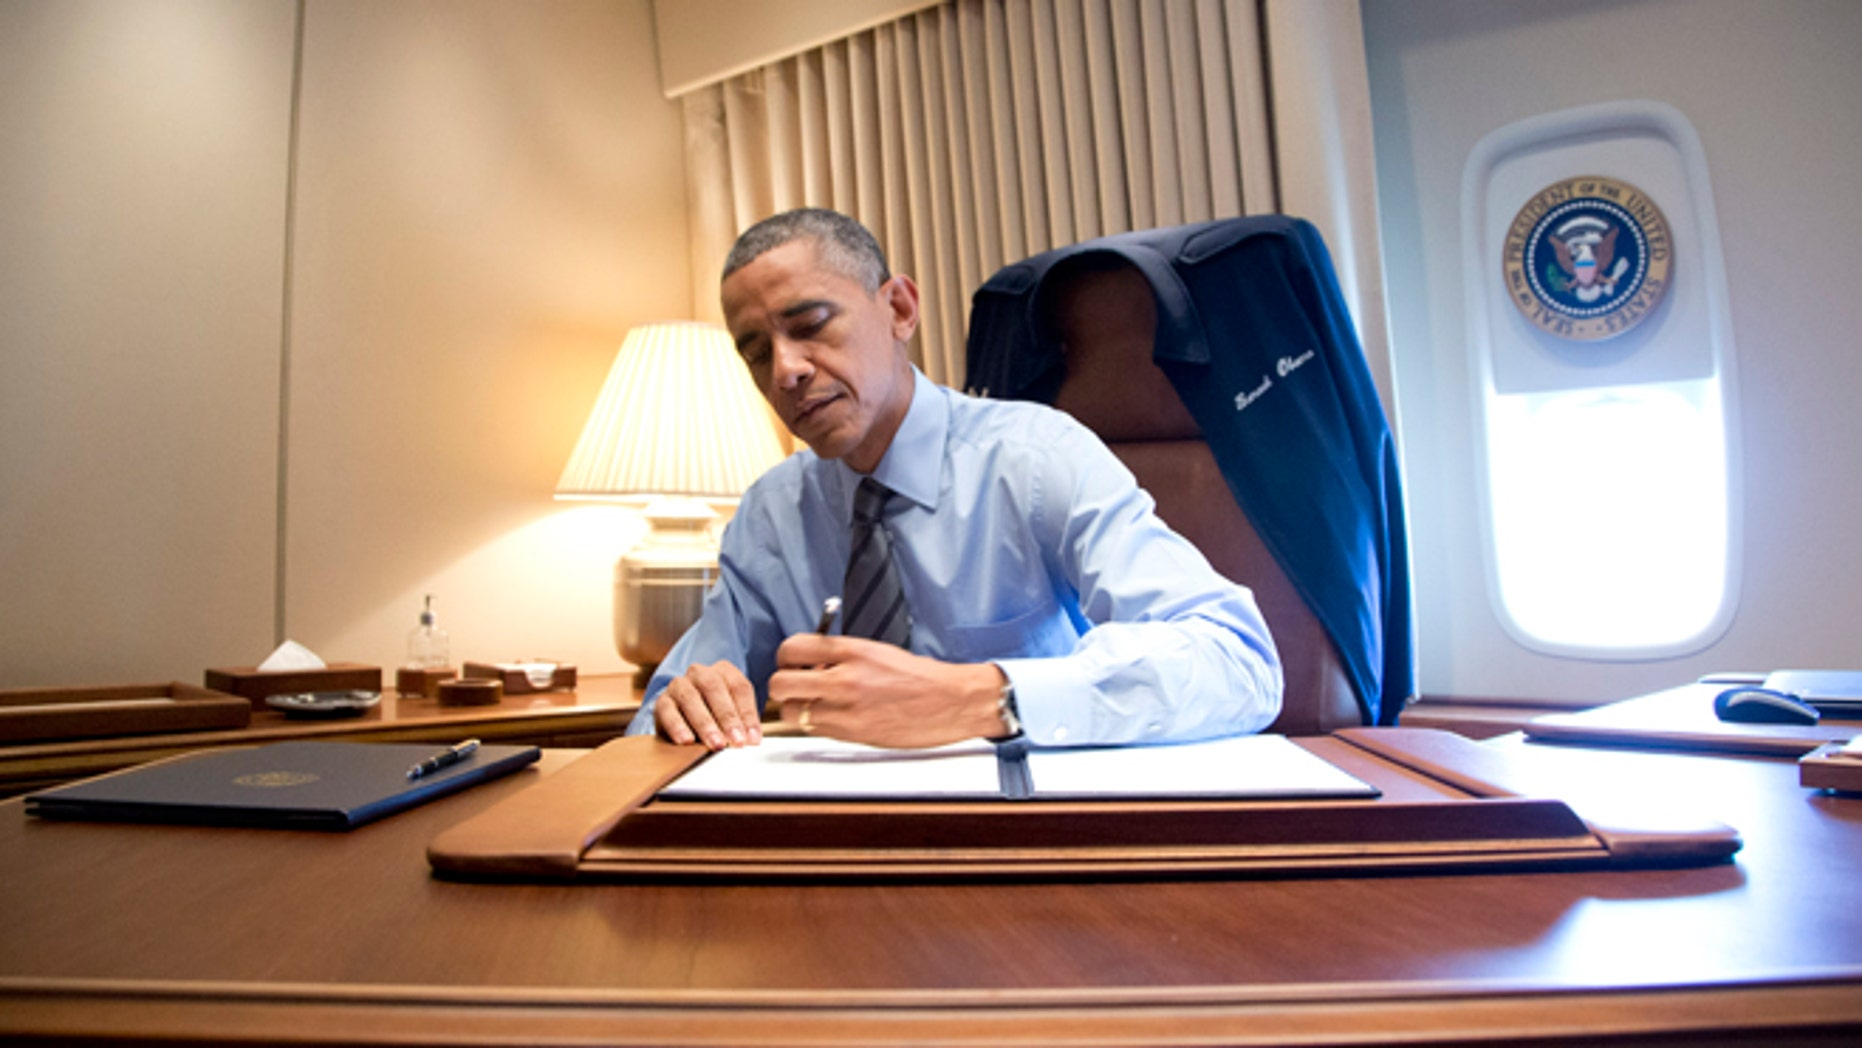 President Obama signed presidential memoranda associated with his actions on immigration on Air Force One.